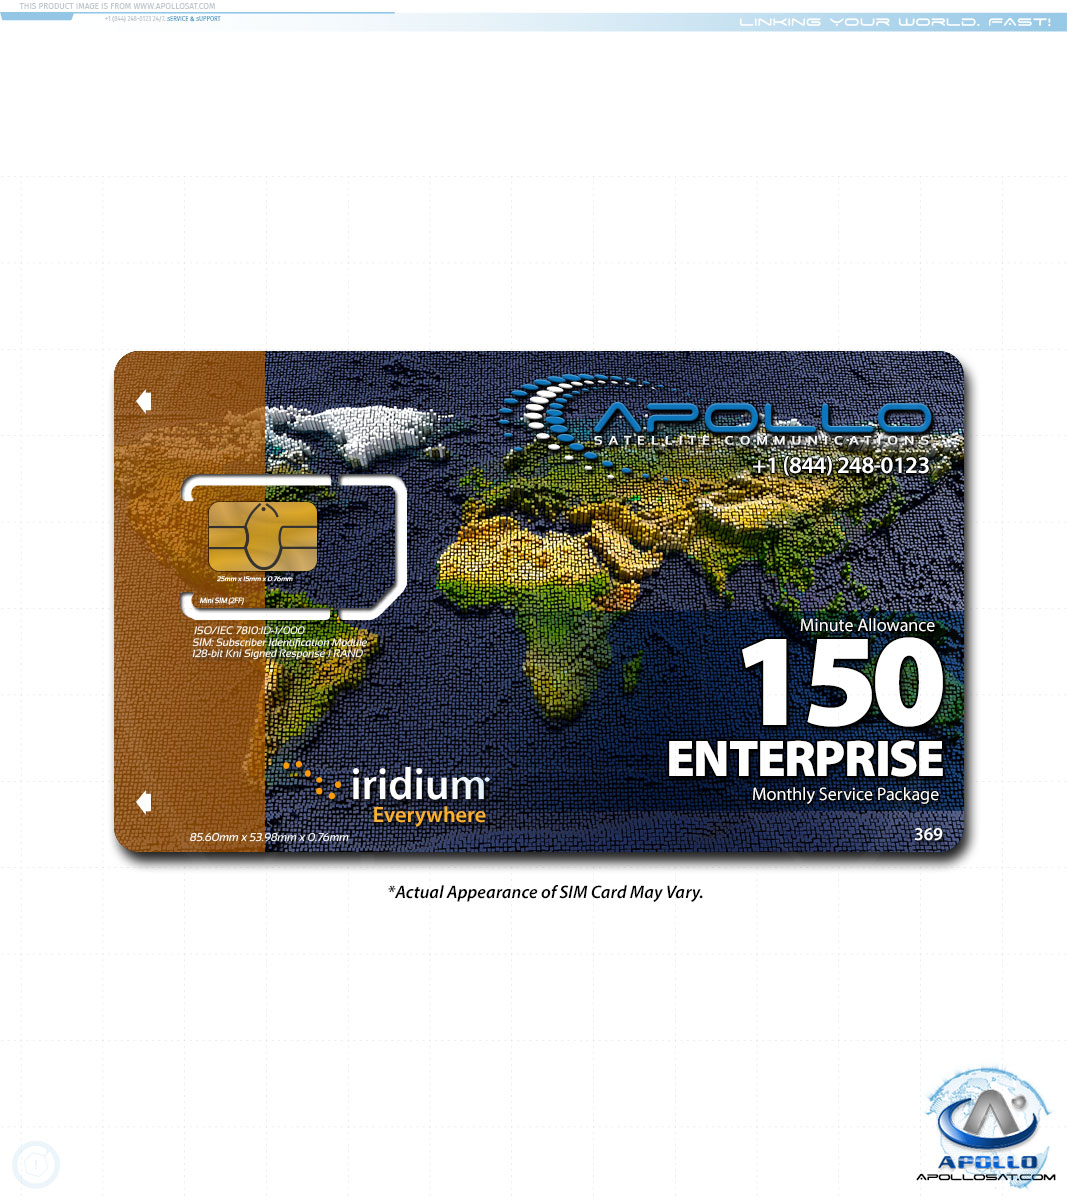 Special Iridium Enterprise Package